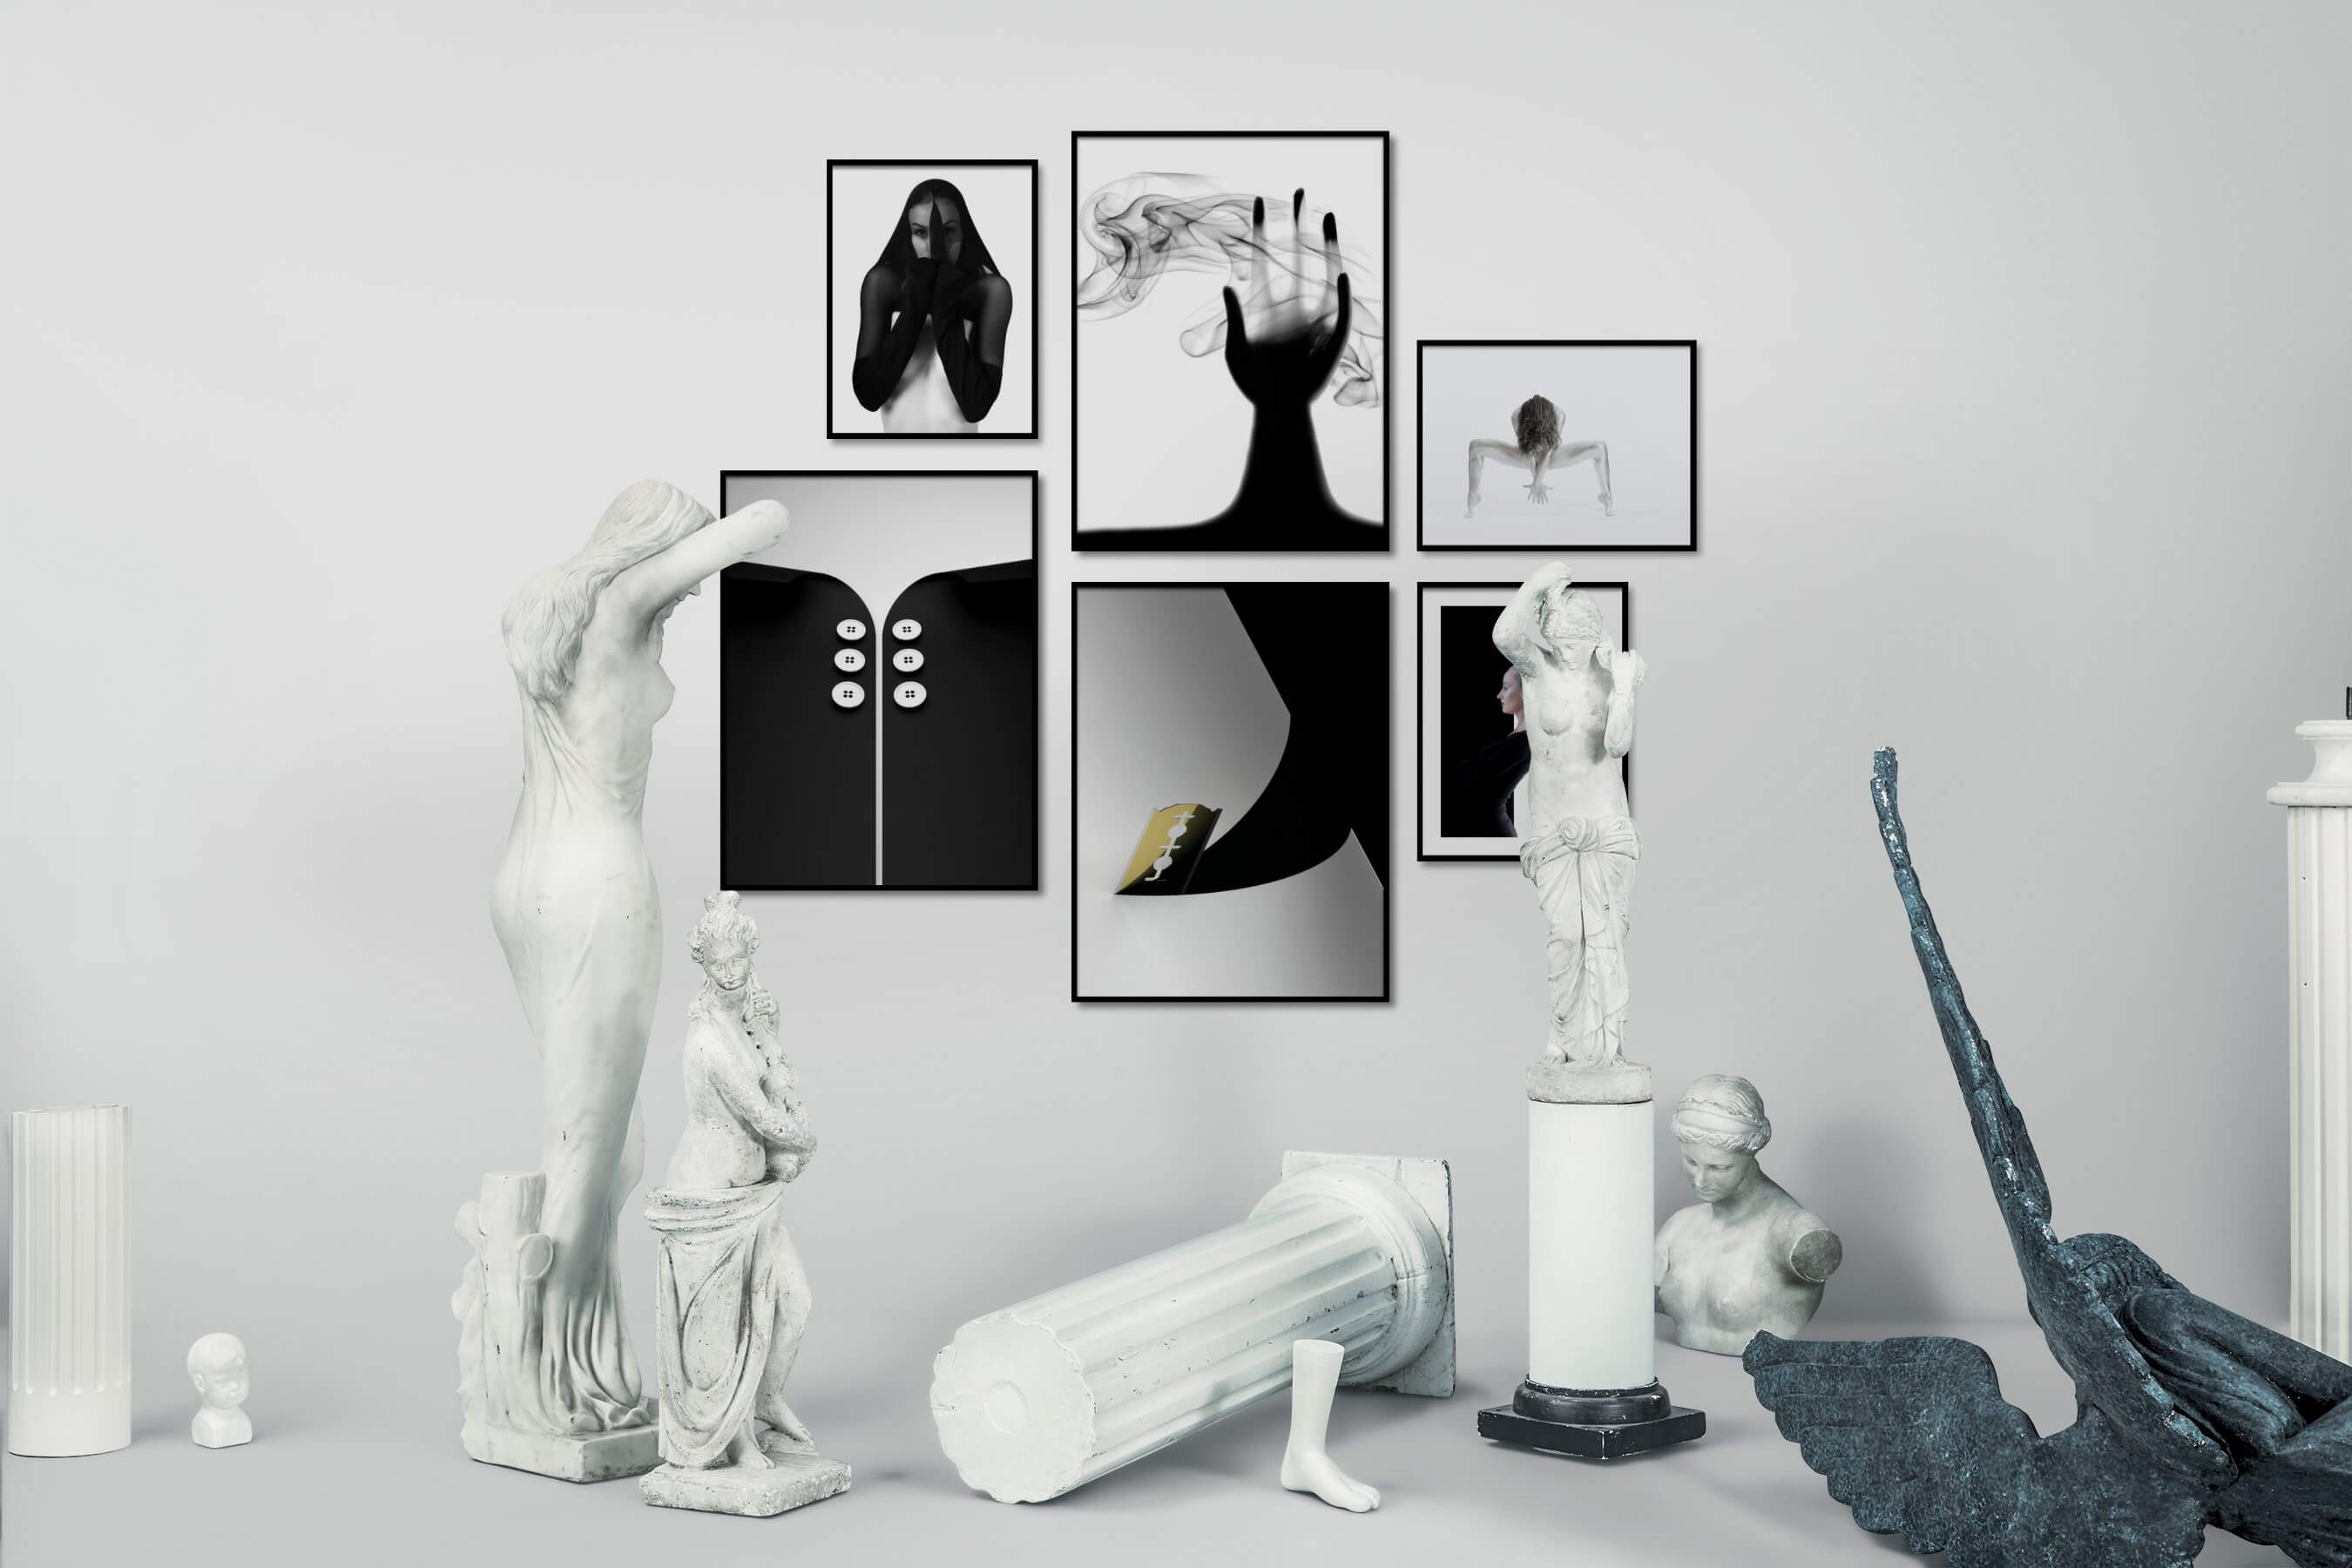 Gallery wall idea with six framed pictures arranged on a wall depicting Artsy, Black & White, Bright Tones, For the Minimalist, and Fashion & Beauty